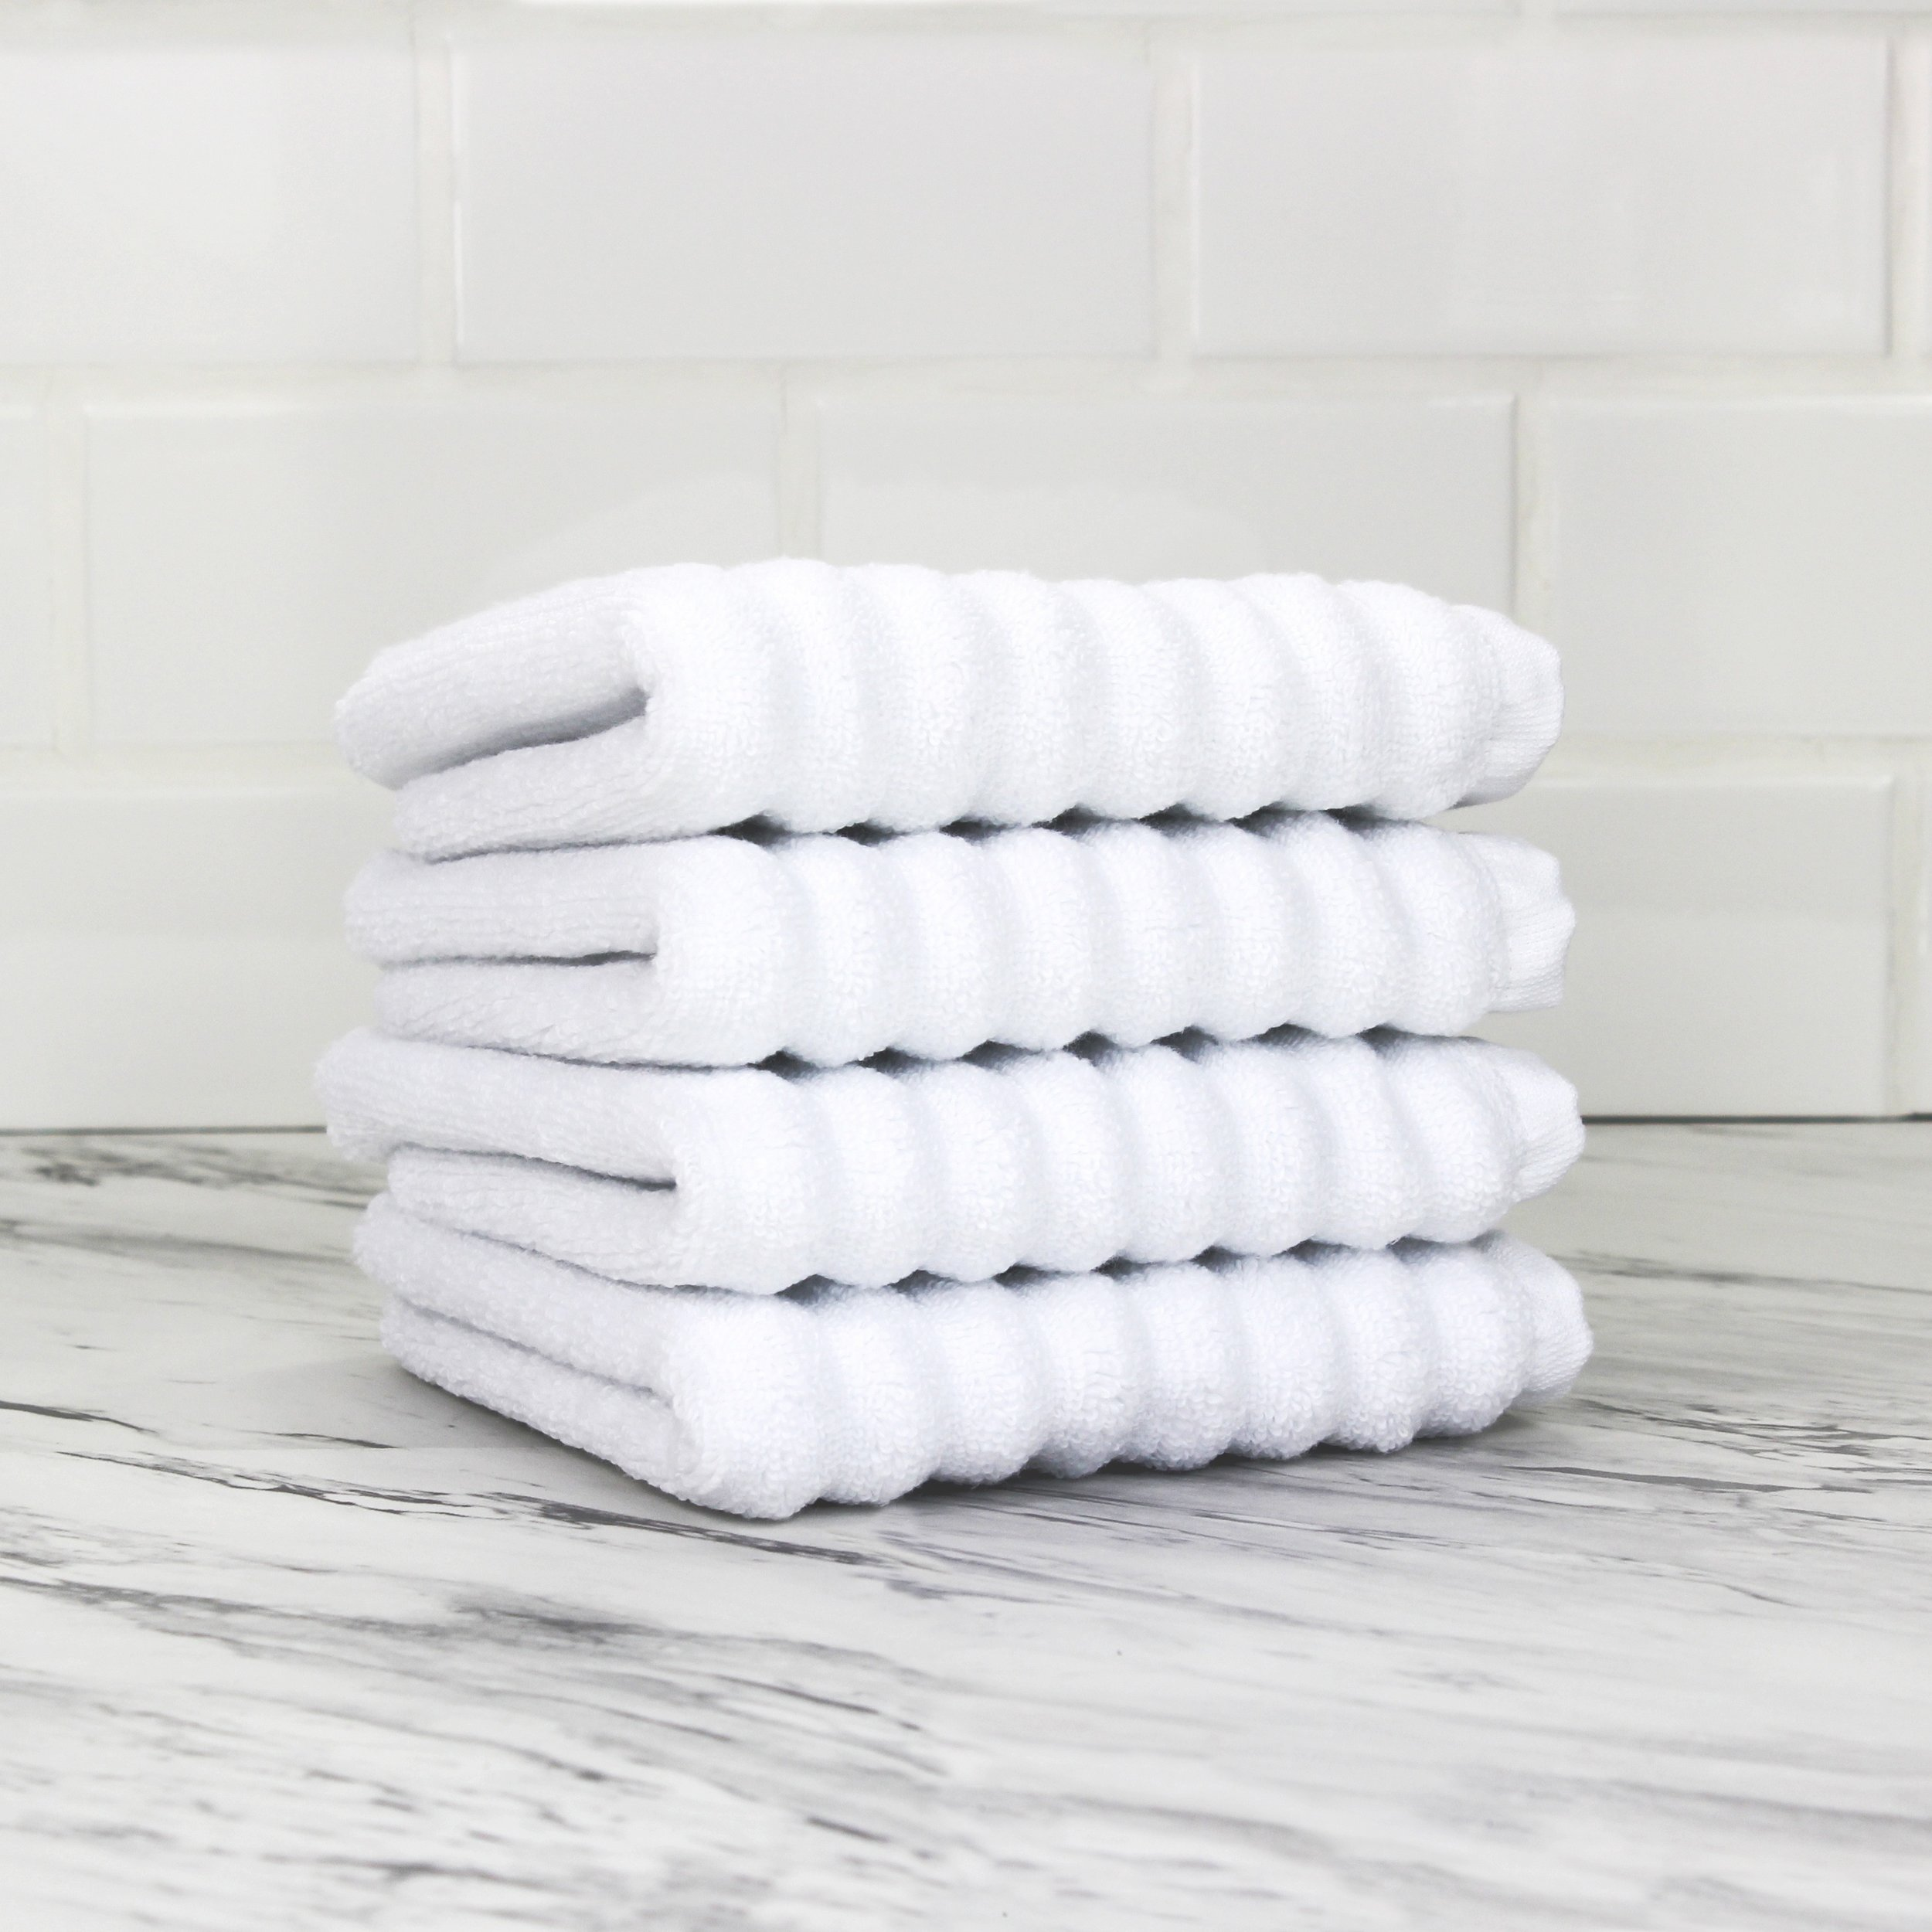 216659_100_turkish_zero_twist_cotton_4pc_wash_towel_set_white.jpg